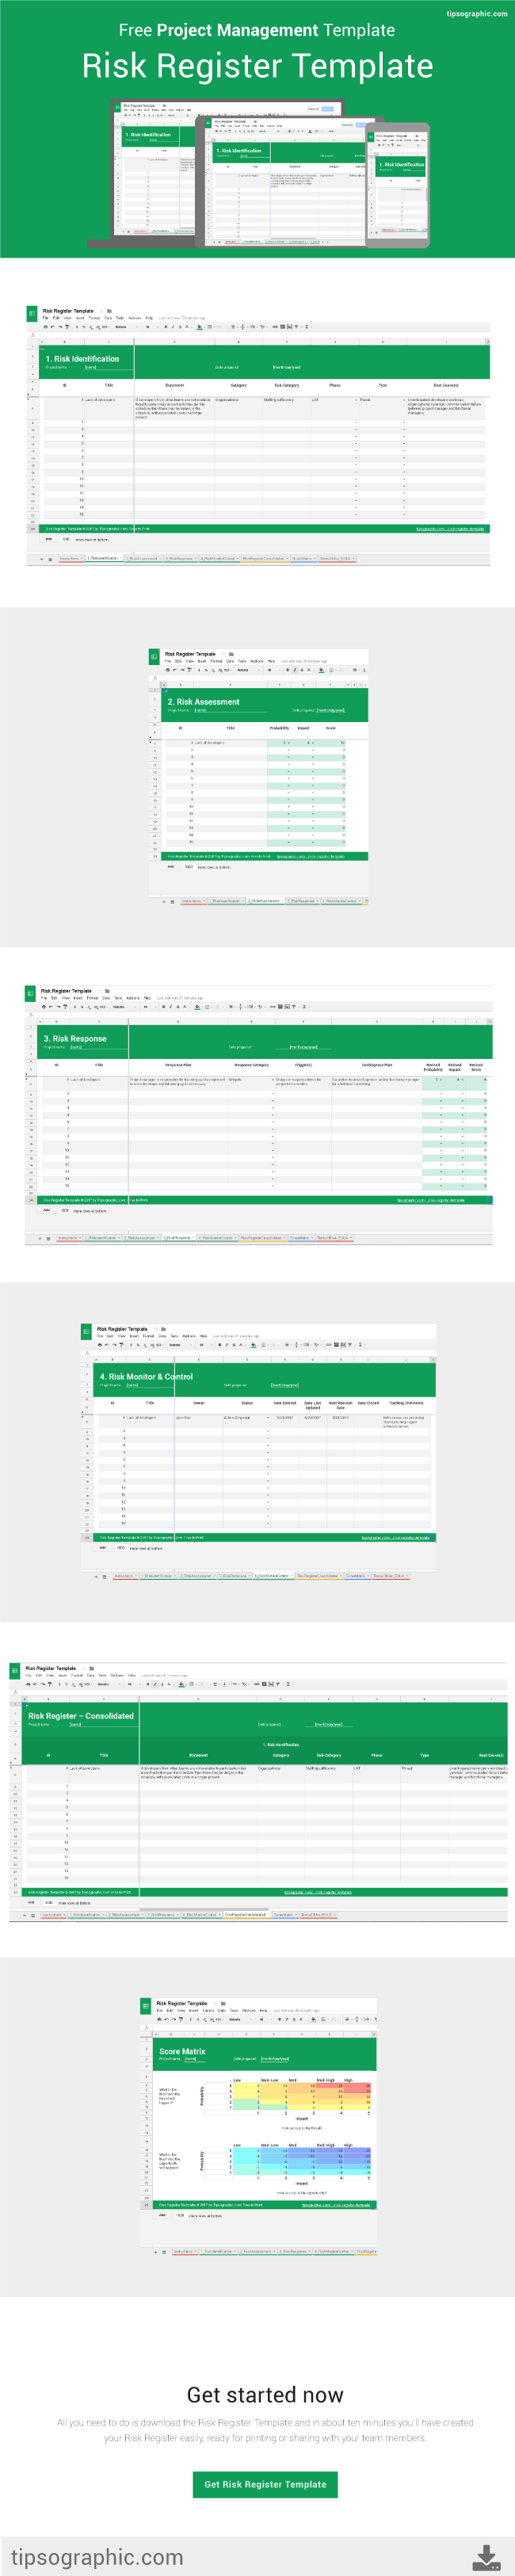 Risk register template for excel google sheets and libreoffice this template is designed to help you track information about identified risks over the course of accmission Gallery